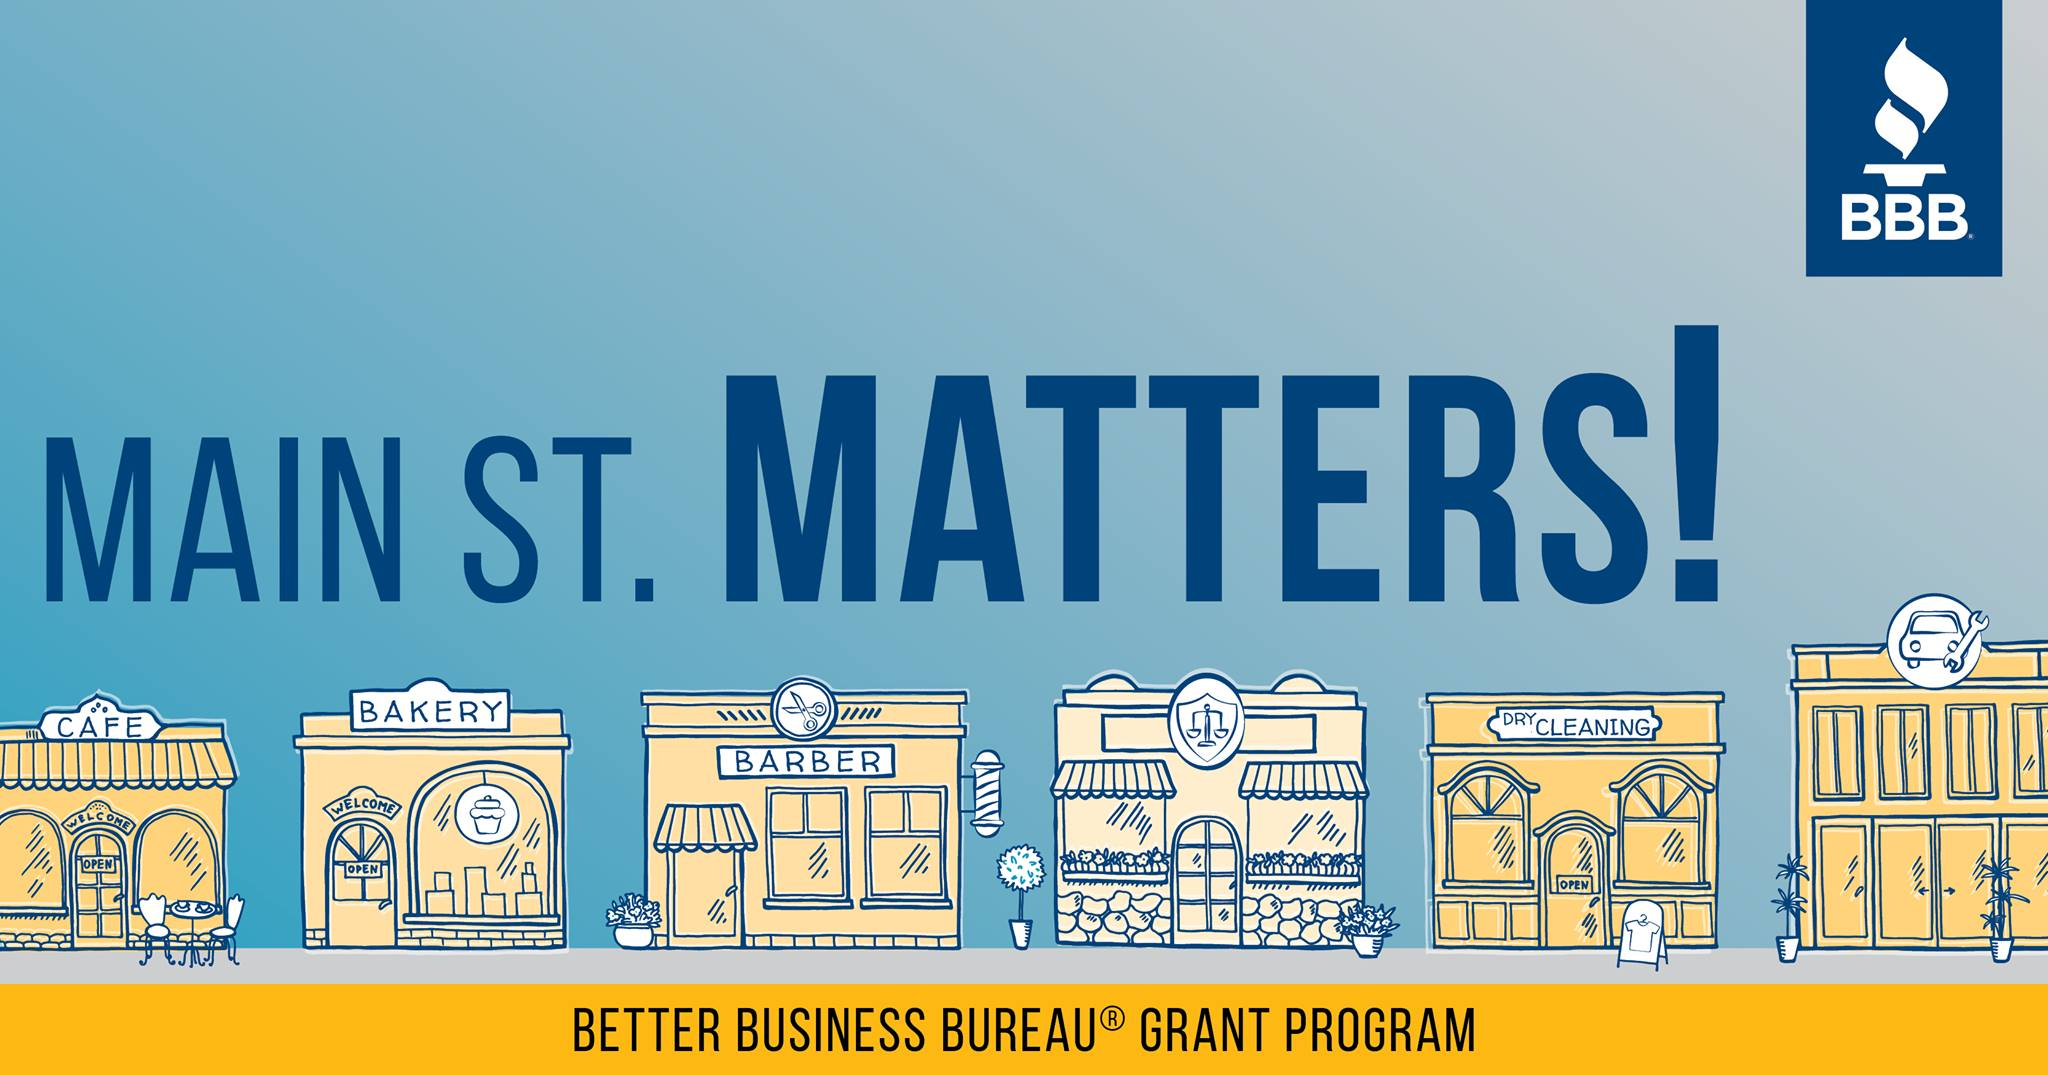 BBB Serving the Pacific Southwest Launches Main St. Matters Grant Program